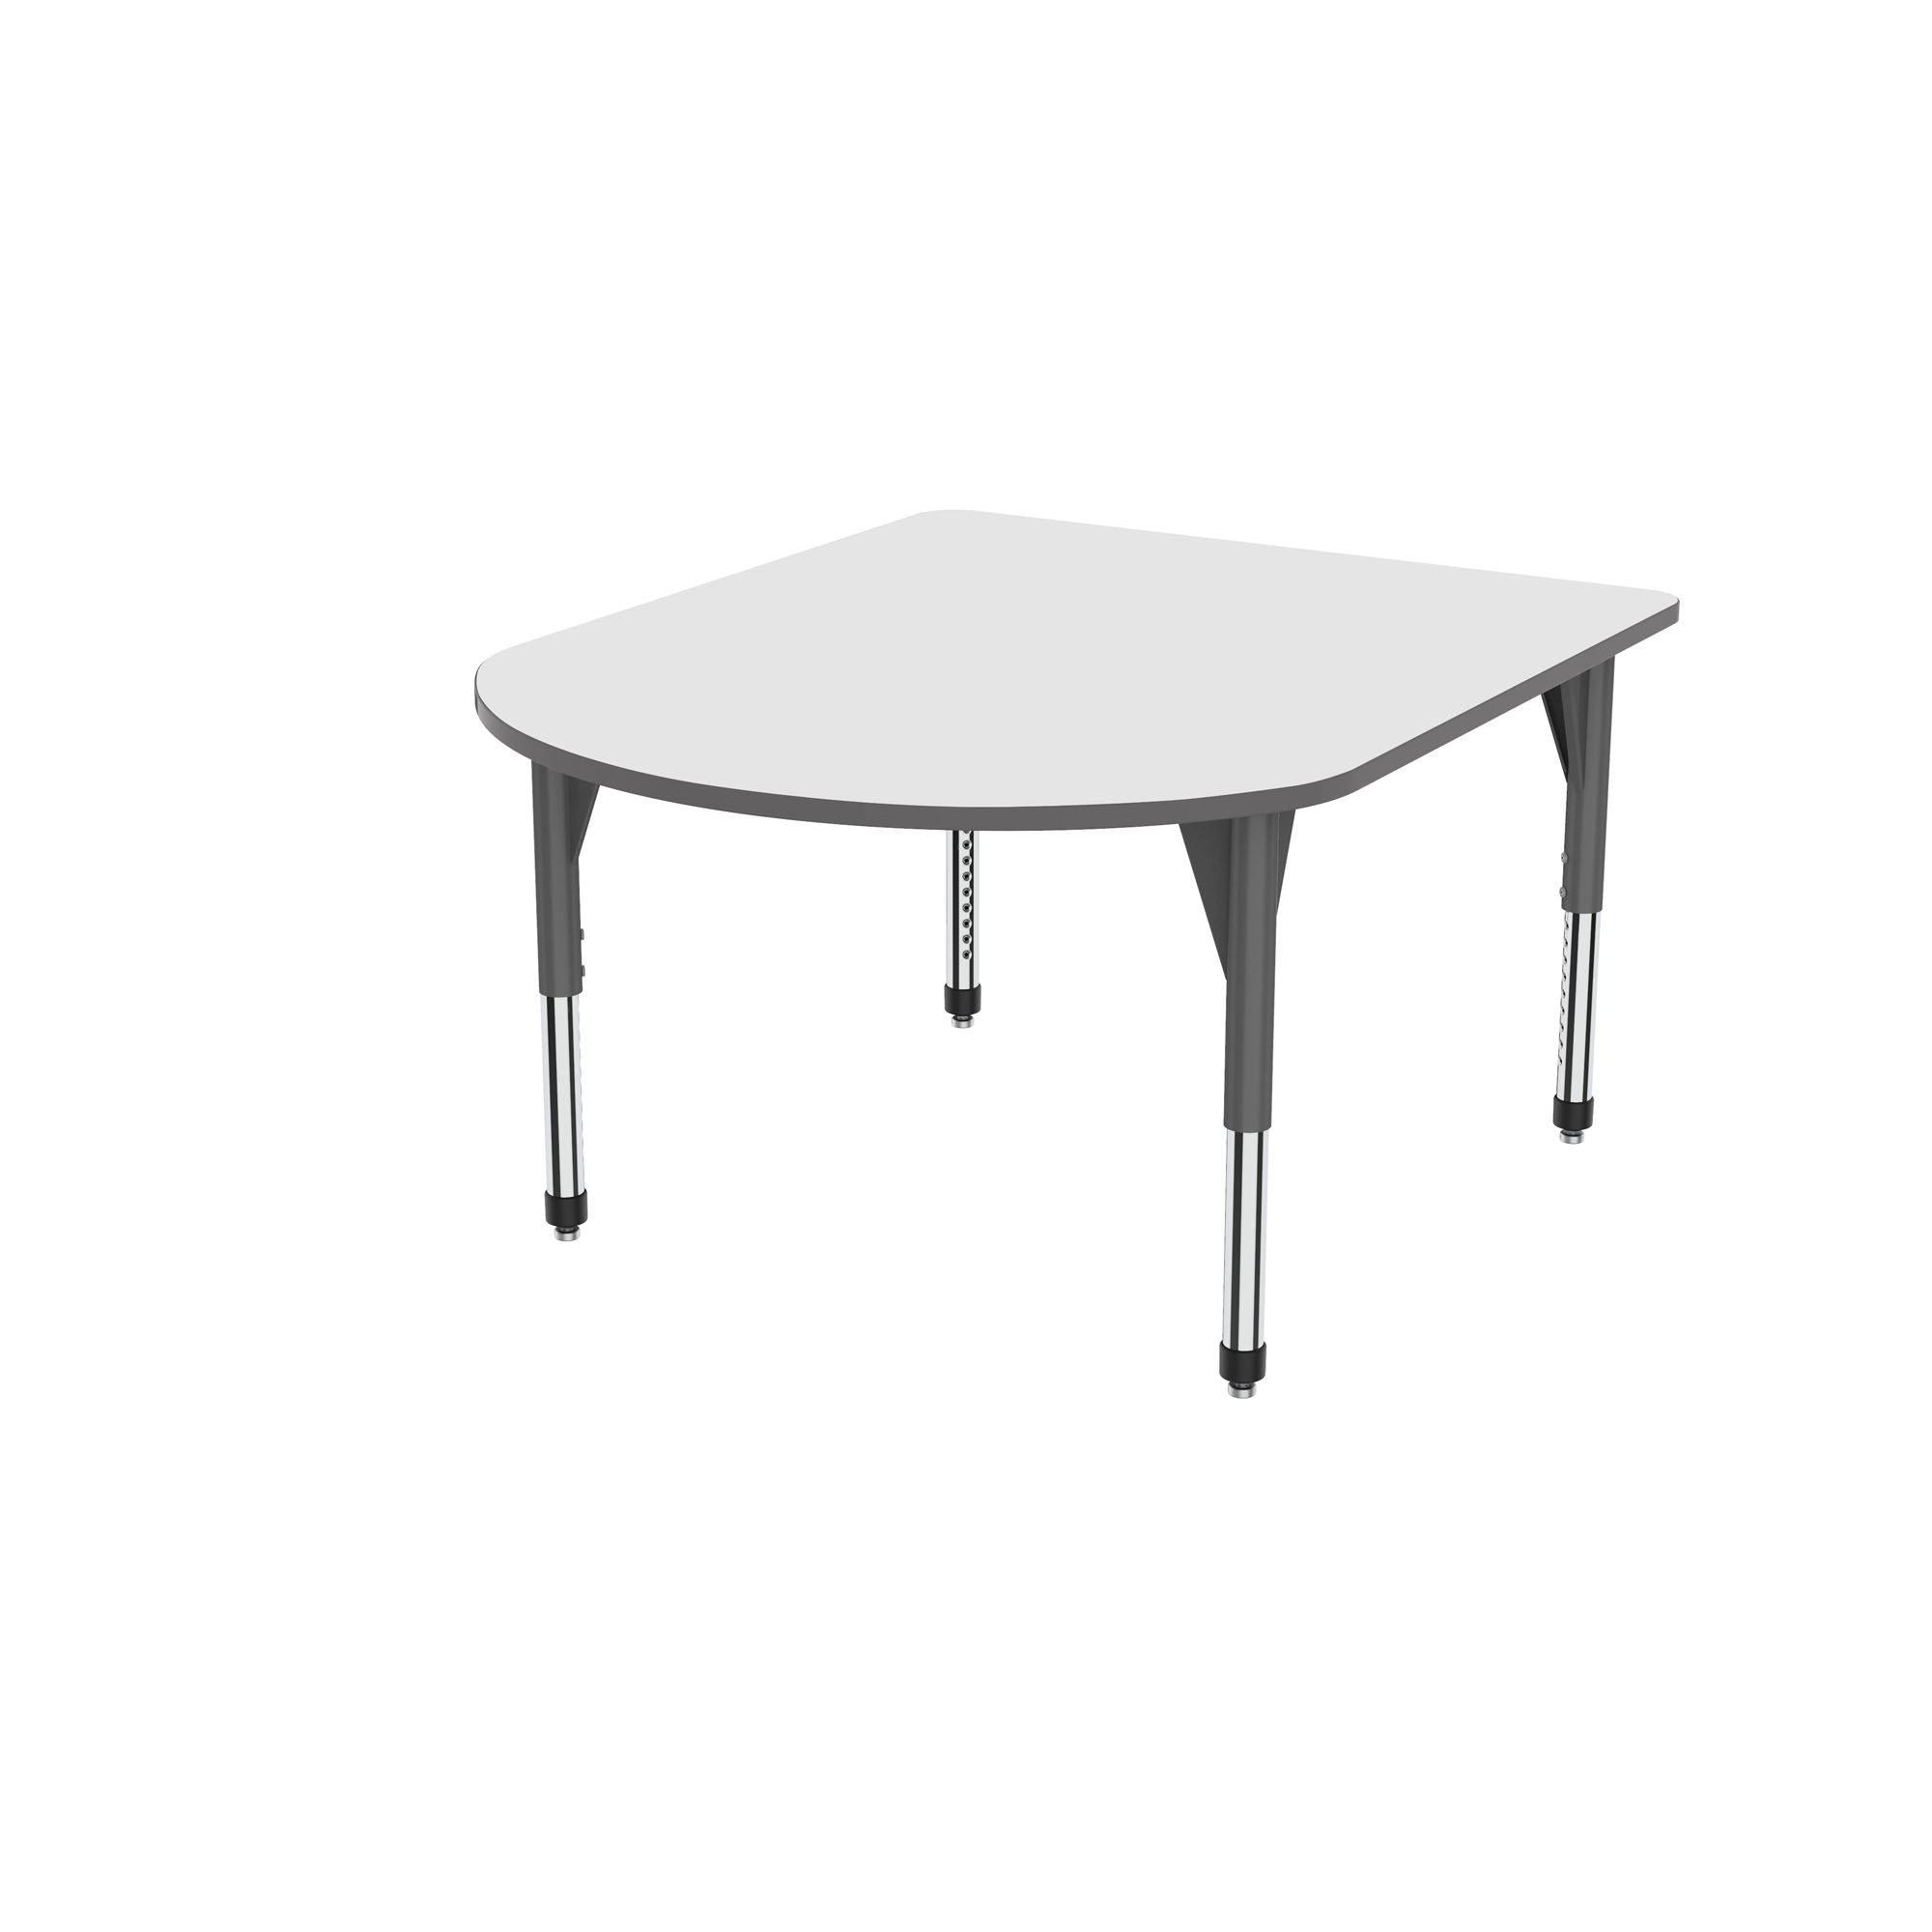 "Premier Series Multimedia Tables with White Dry-Erase Top, 48"" x 60""-Tables-Sitting (21"" - 31"")-White Dry Erase/Gray-Gray"